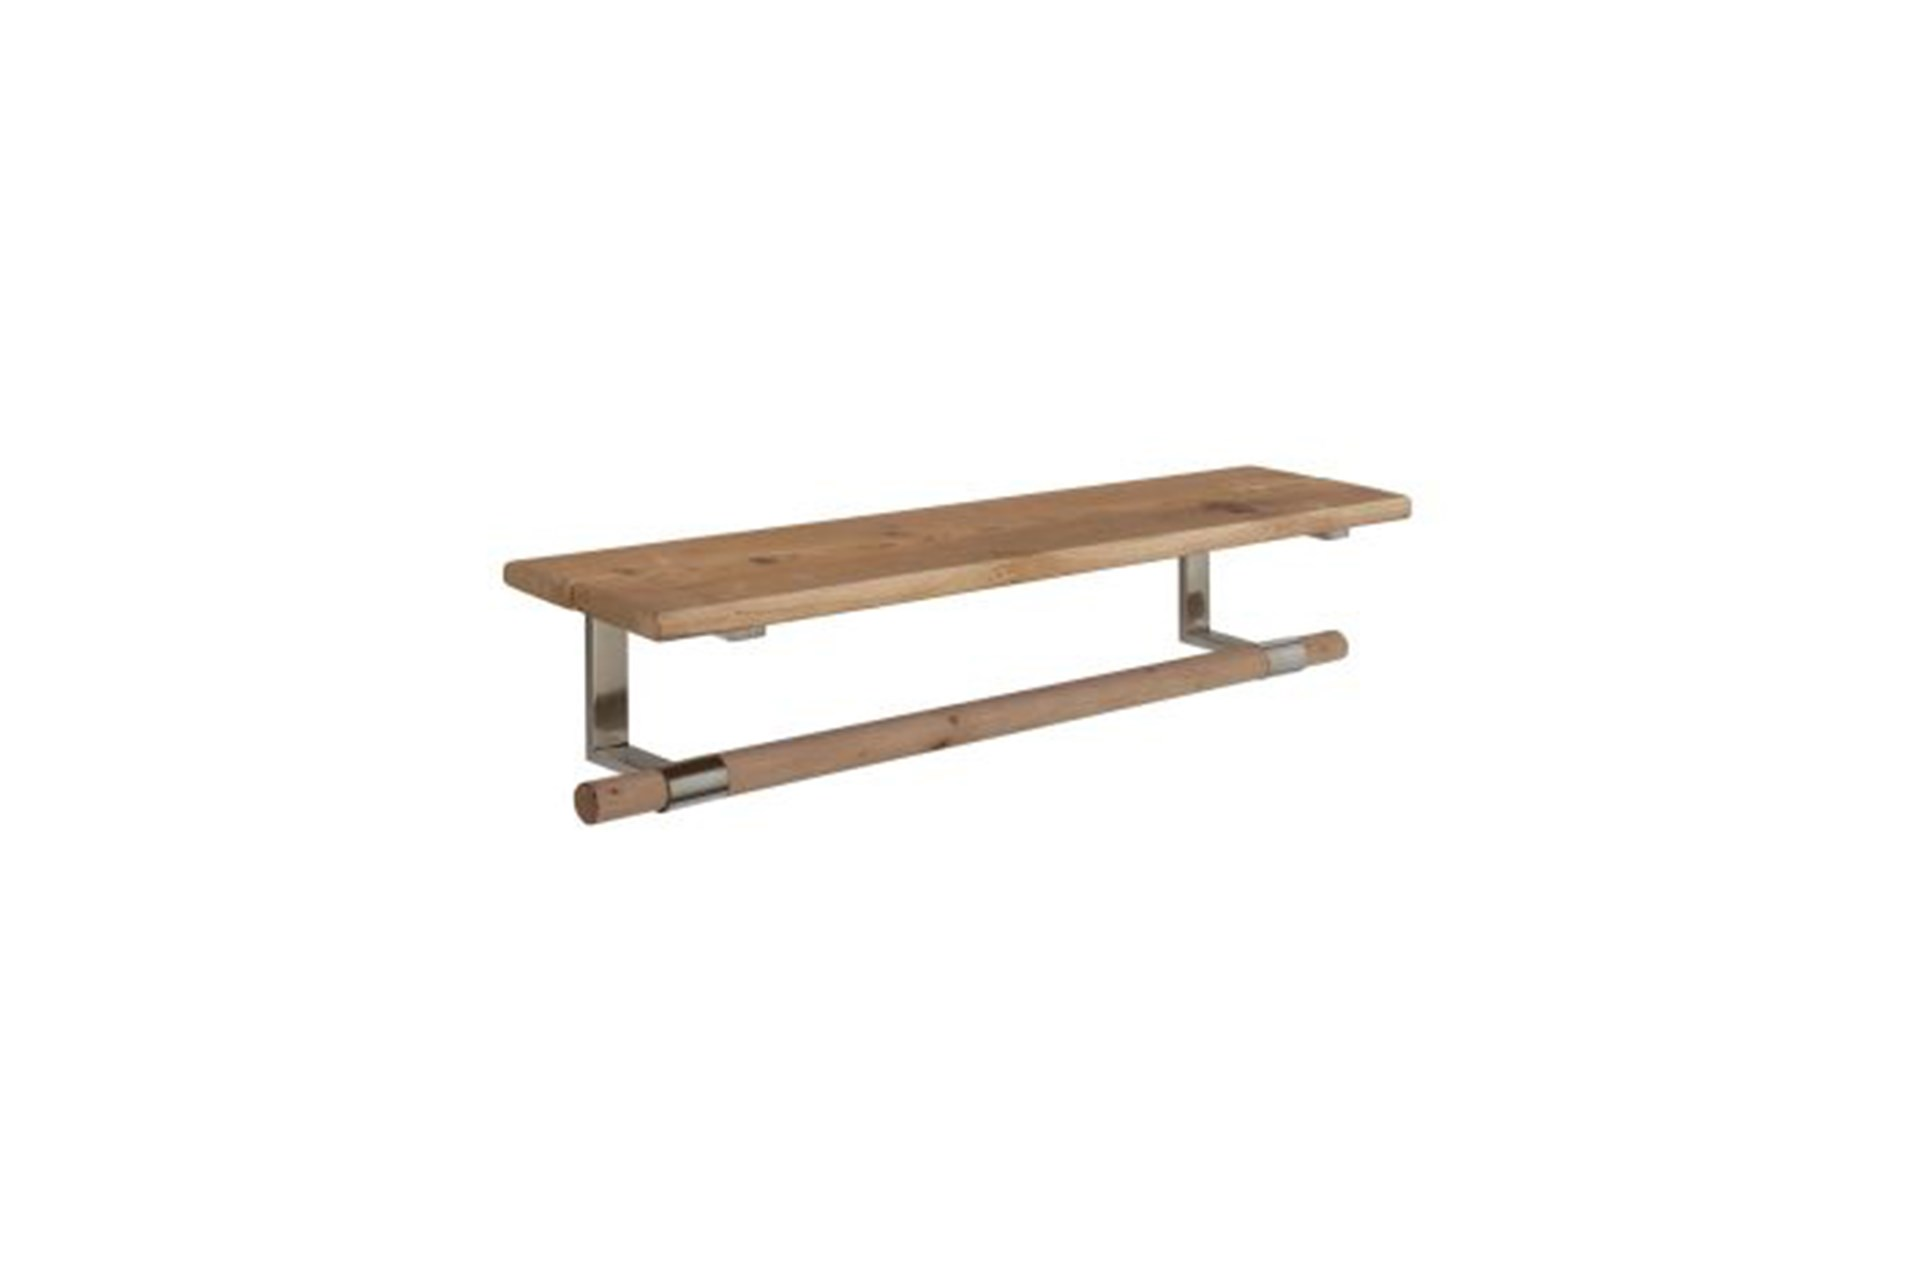 32 Inch Wood And Metal Shelf Living Spaces